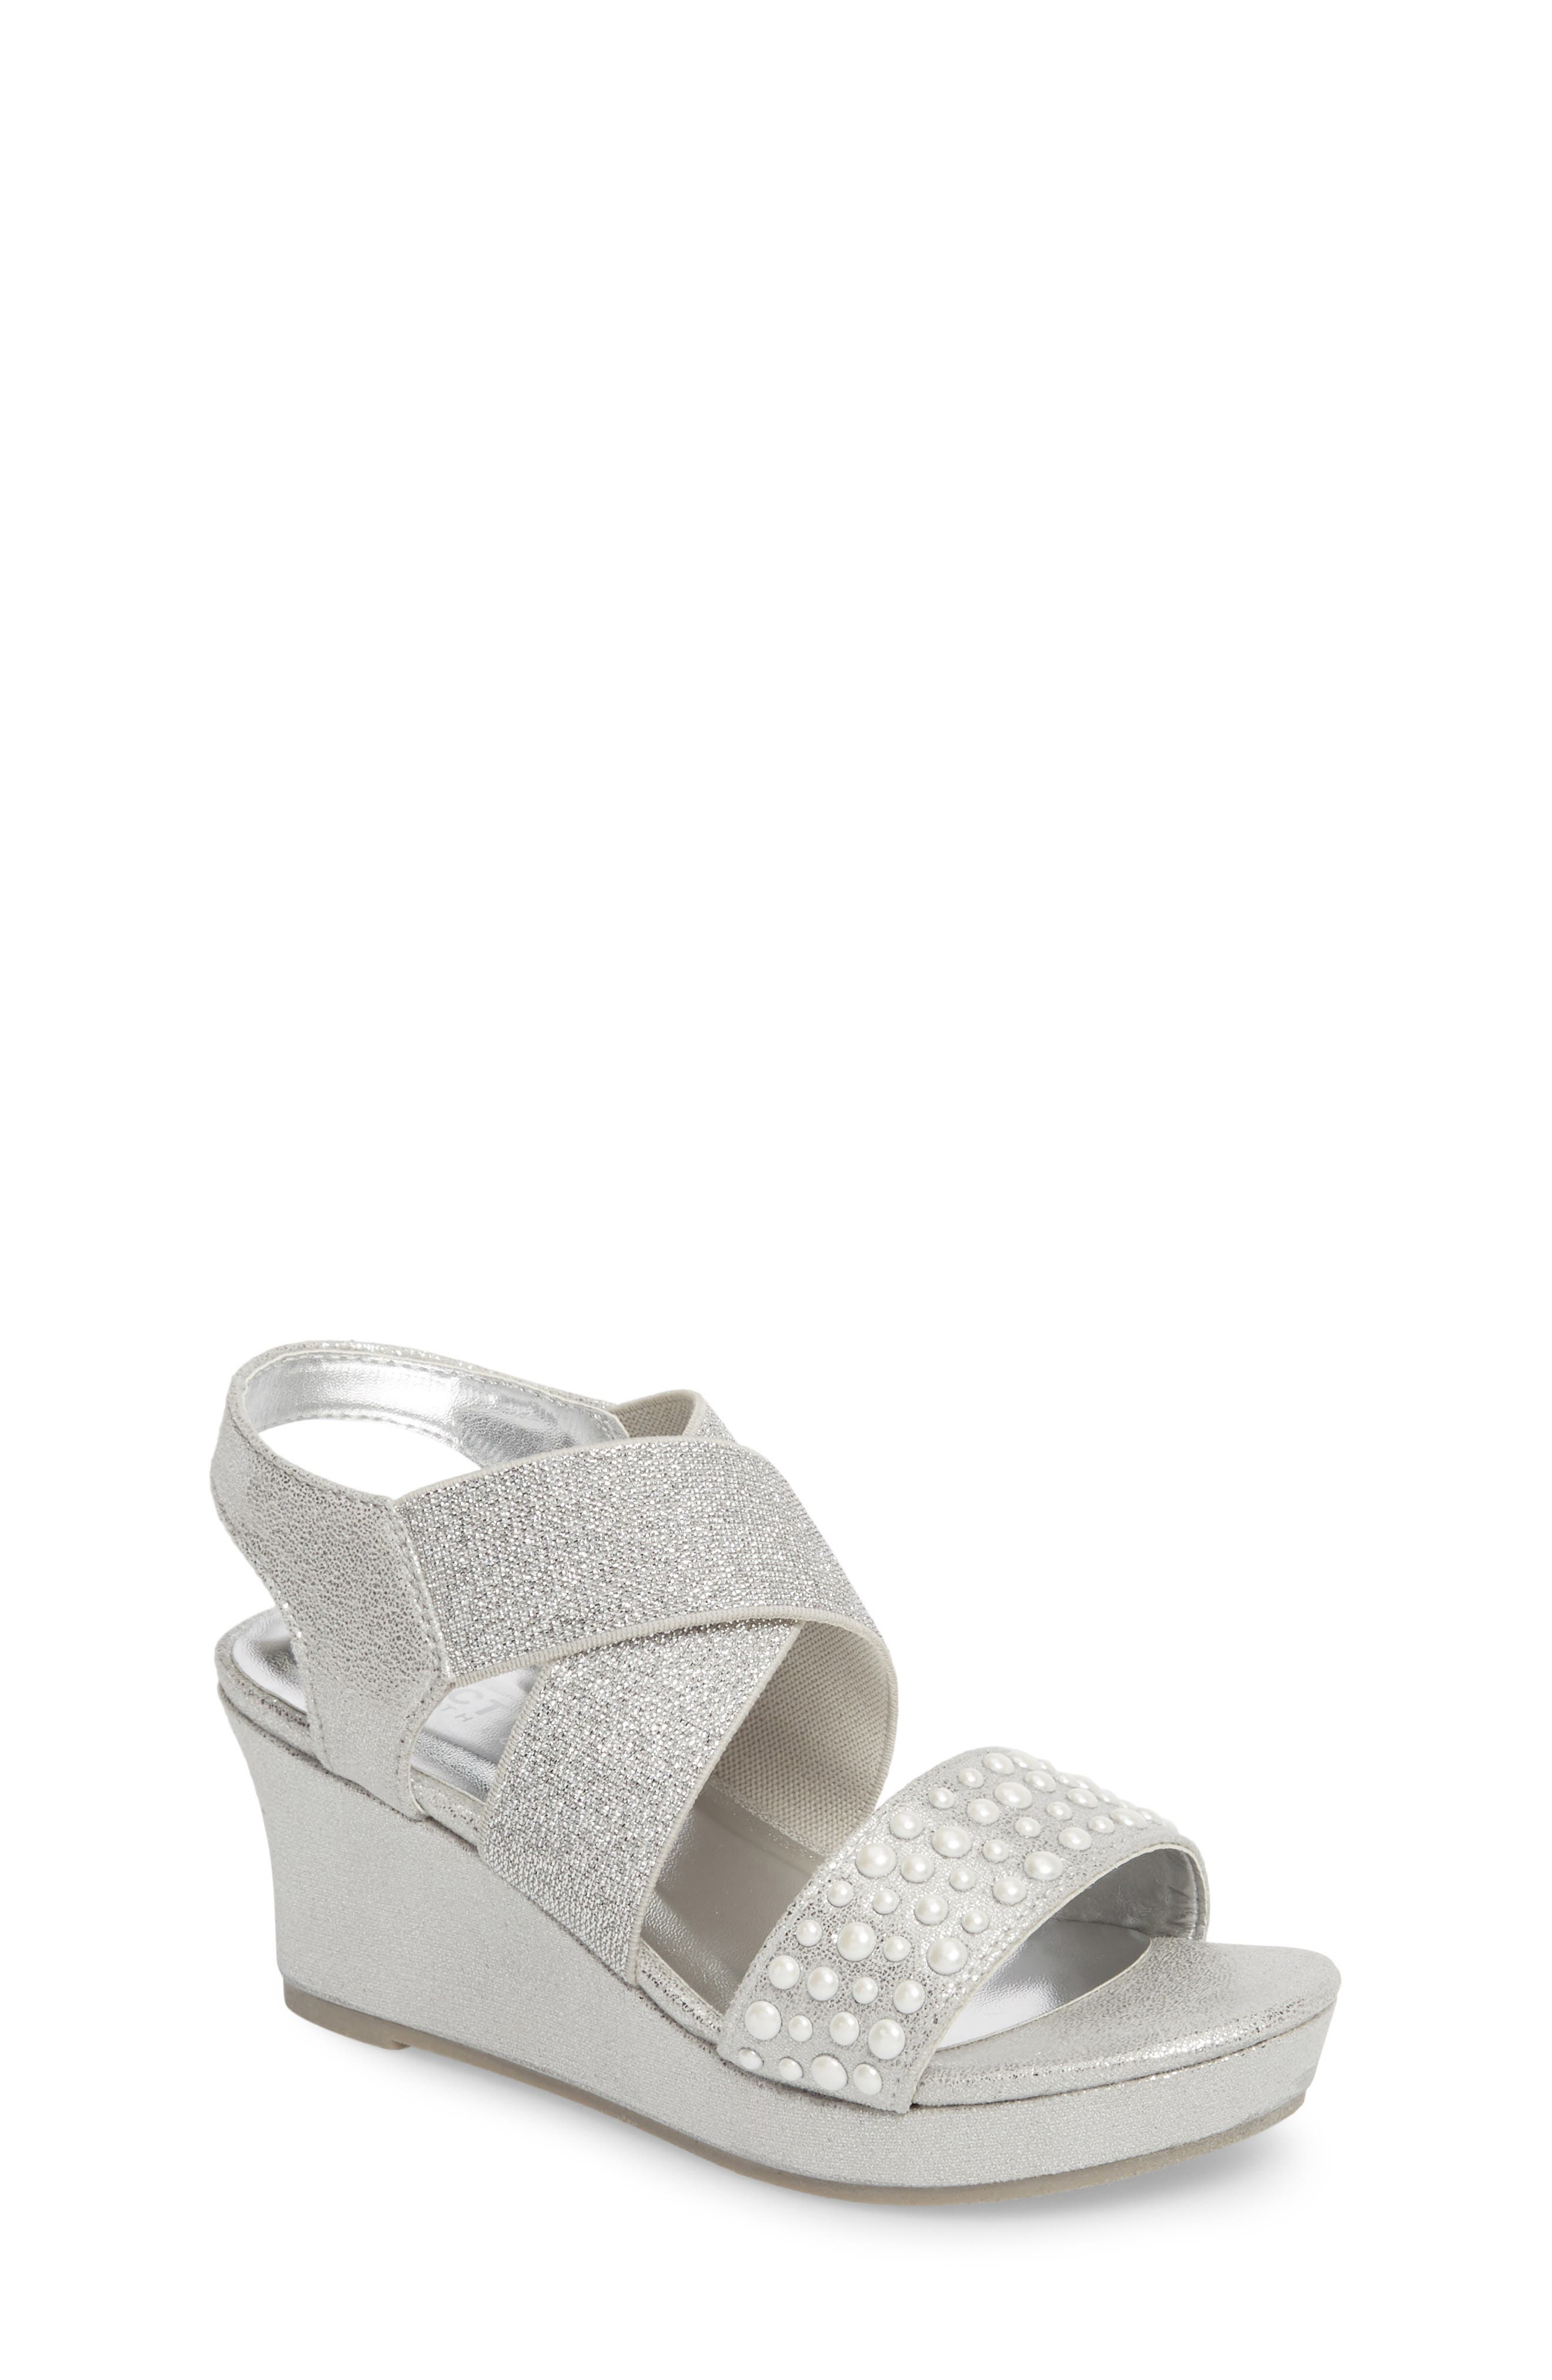 Reed Glimmer Wedge Sandal,                             Main thumbnail 1, color,                             044